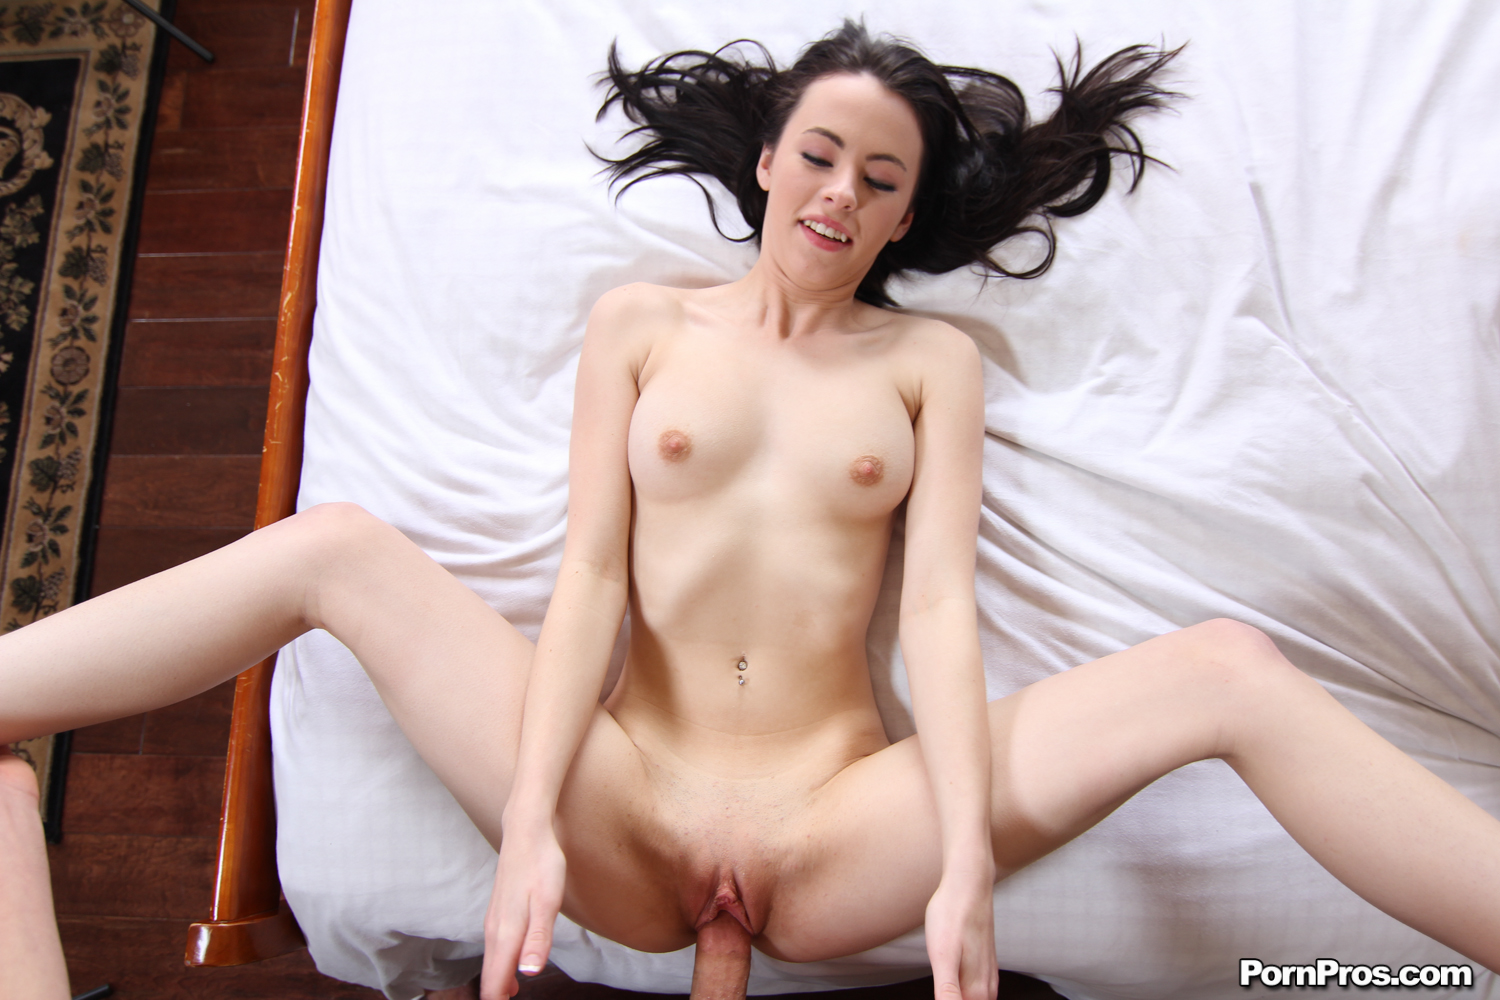 Groupsex on the couch 6